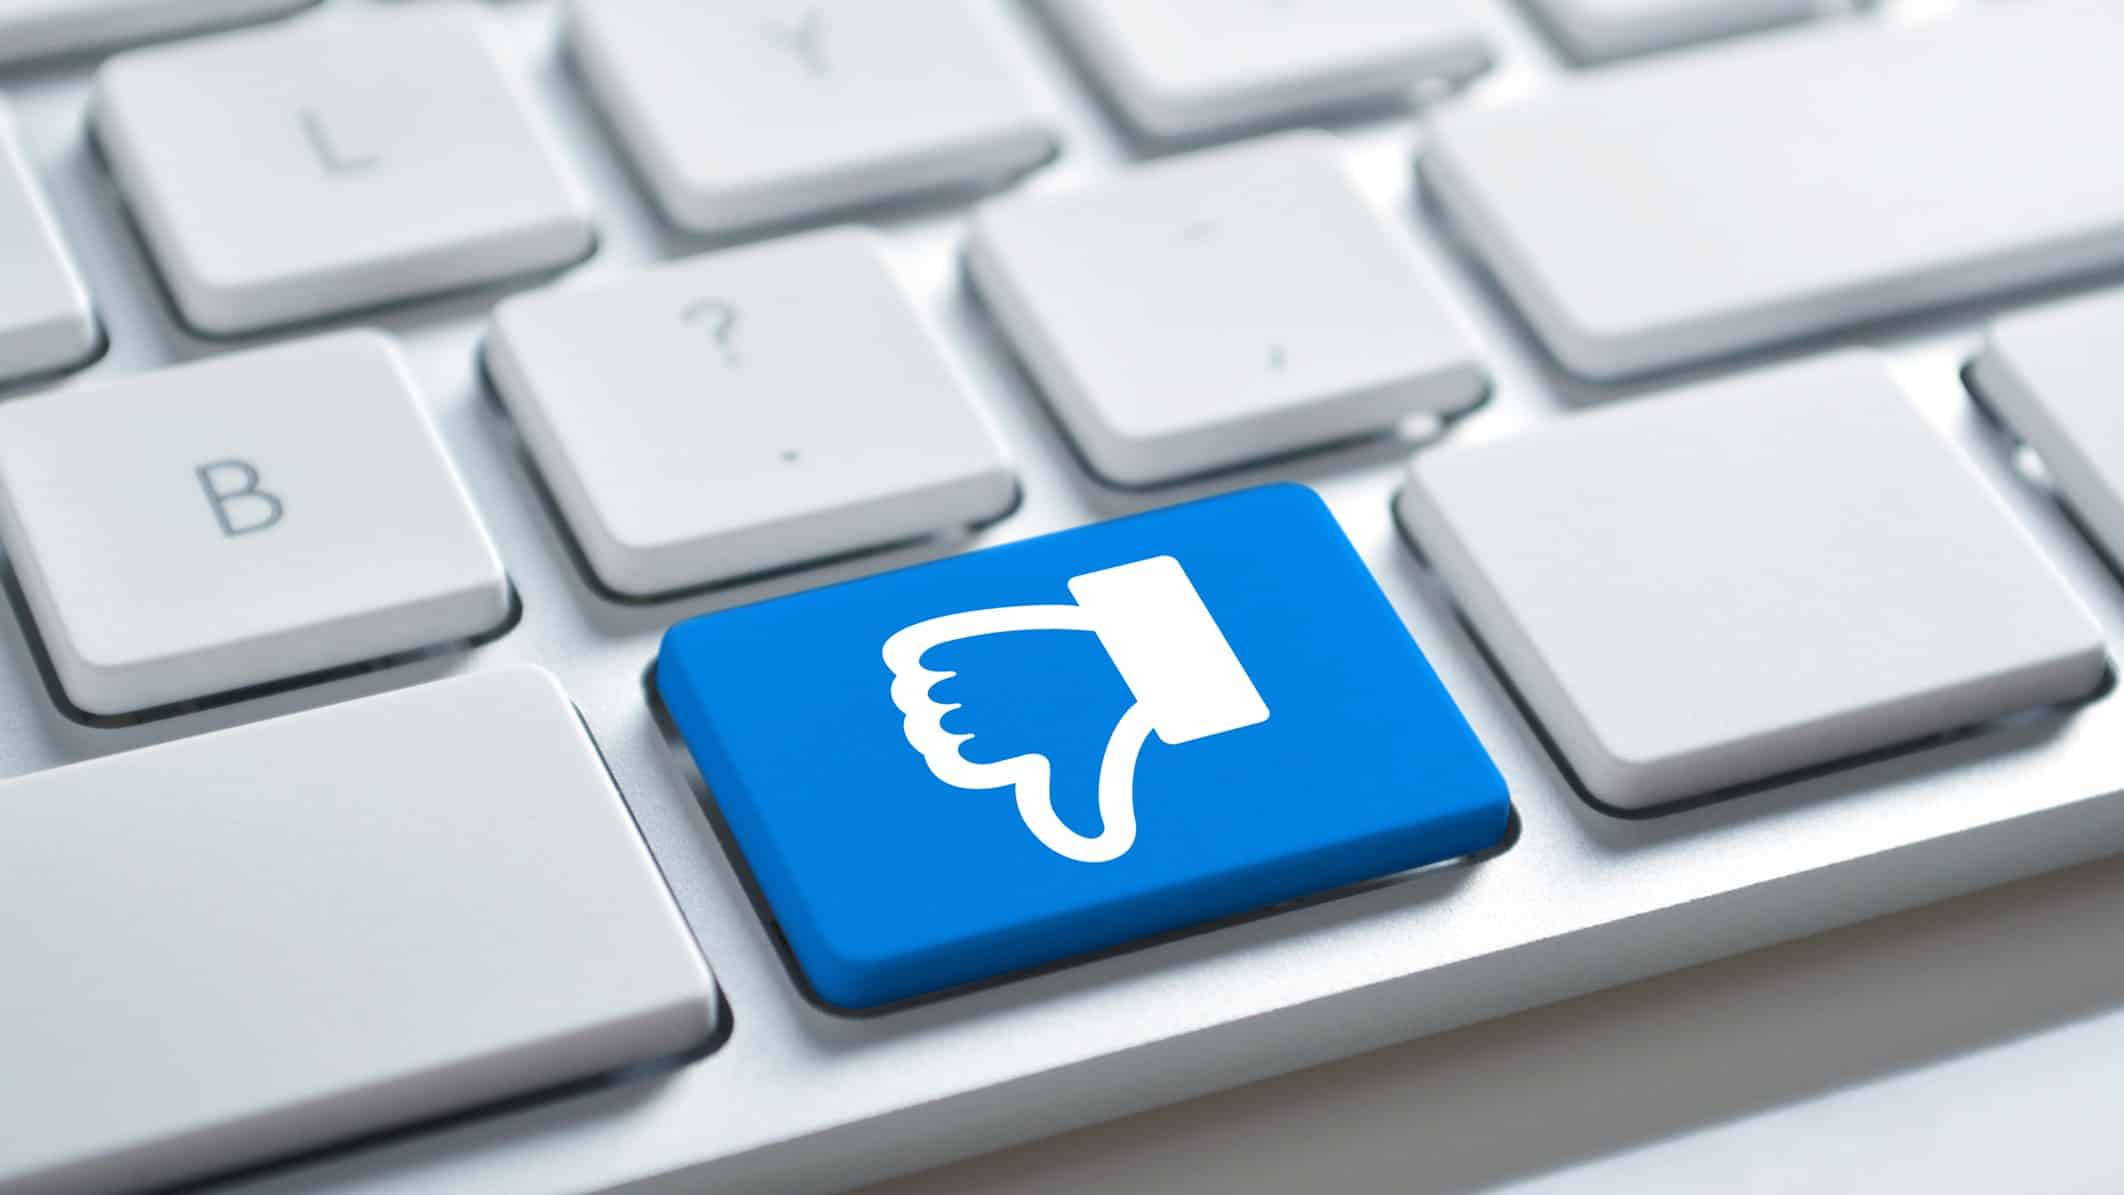 Thumbs down Facebook icon on a computer keyboard, indicating backlash against facebook's news ban in Australia